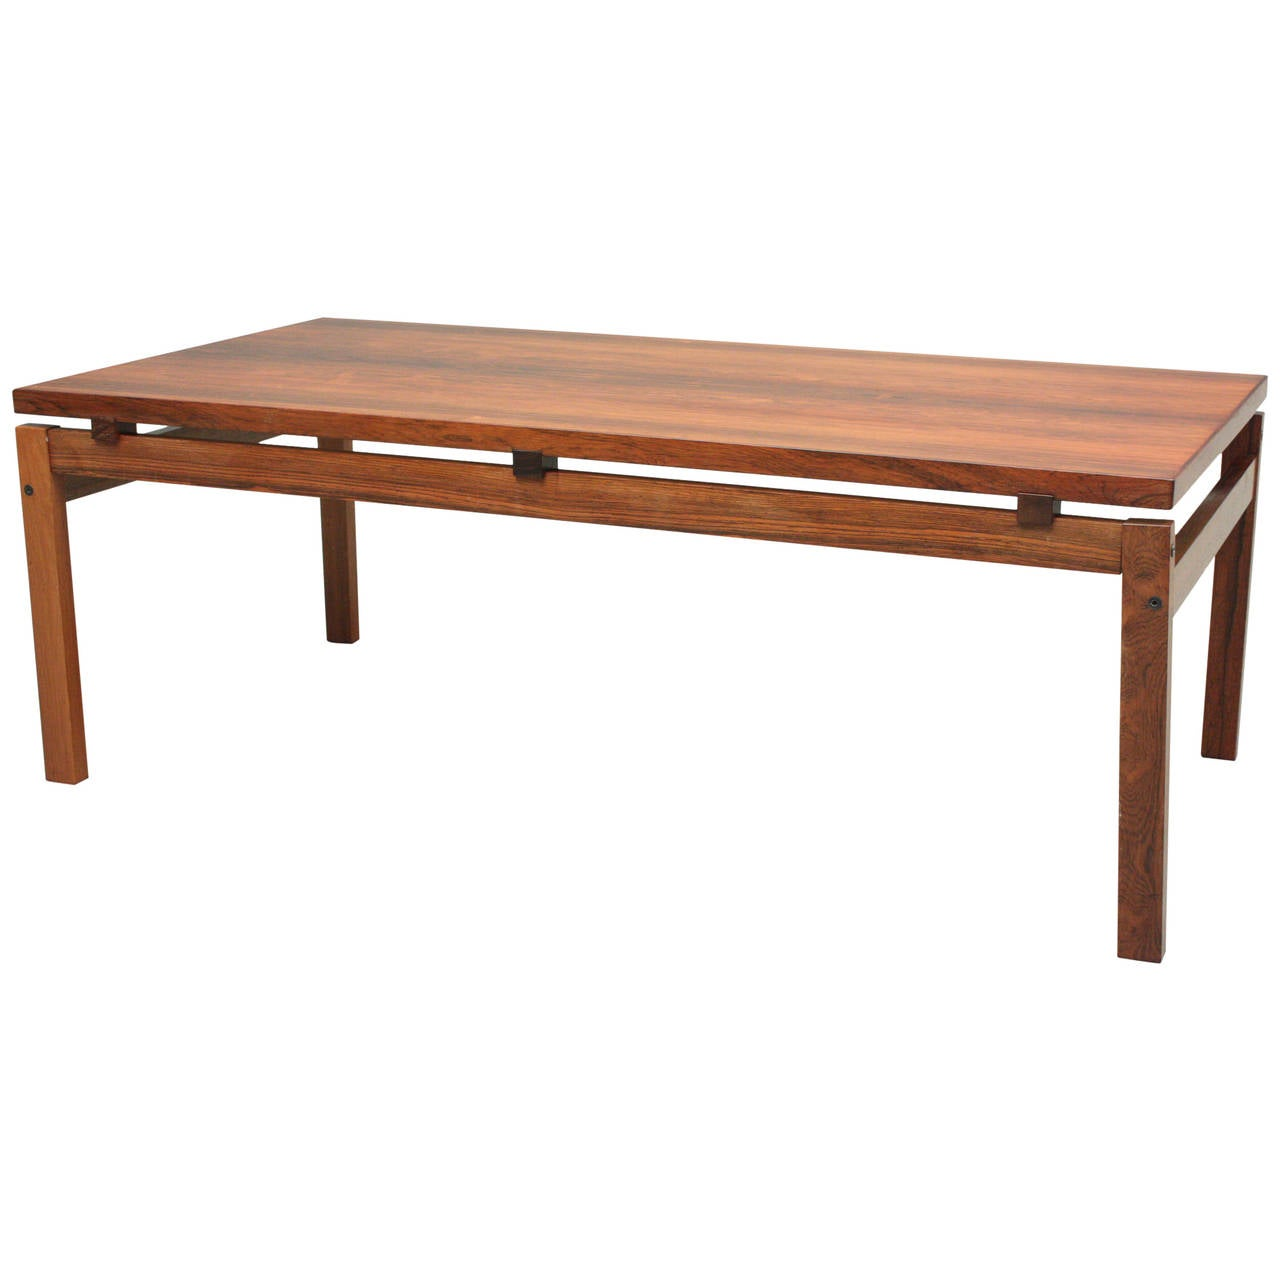 Mid century modern rosewood coffee table at 1stdibs for Modern furniture table